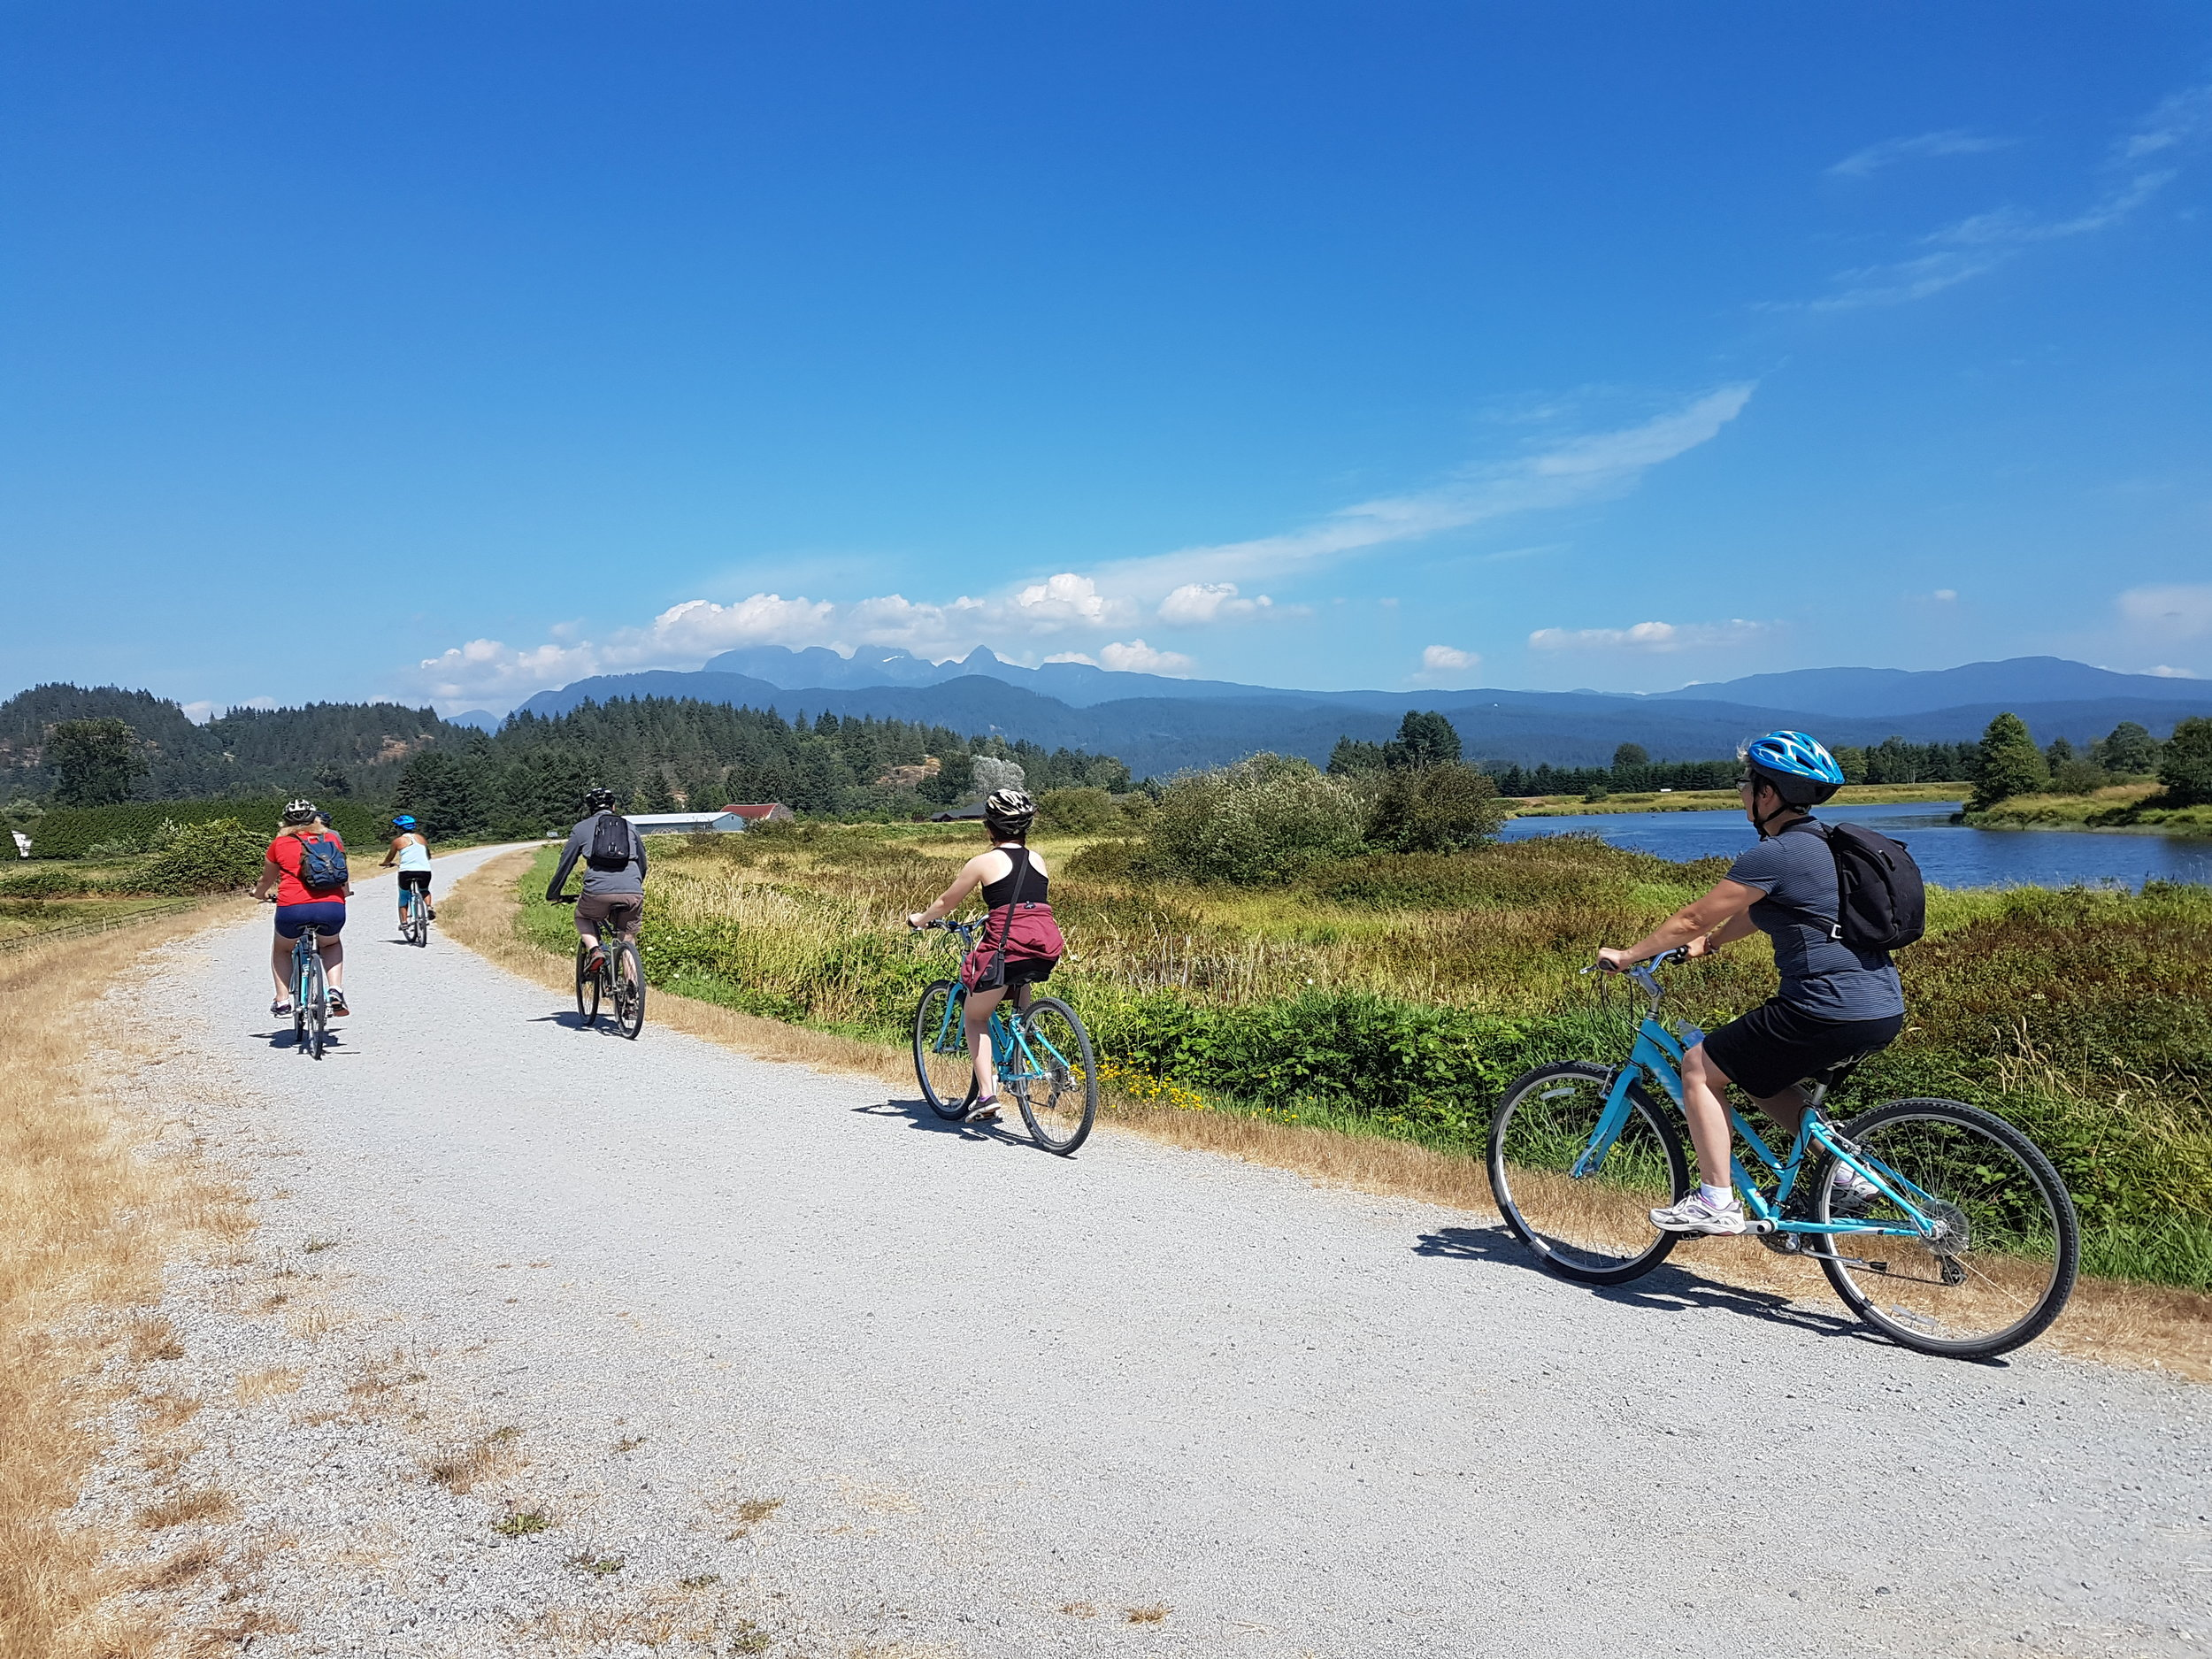 Biking during our tour at Pitt Meadows